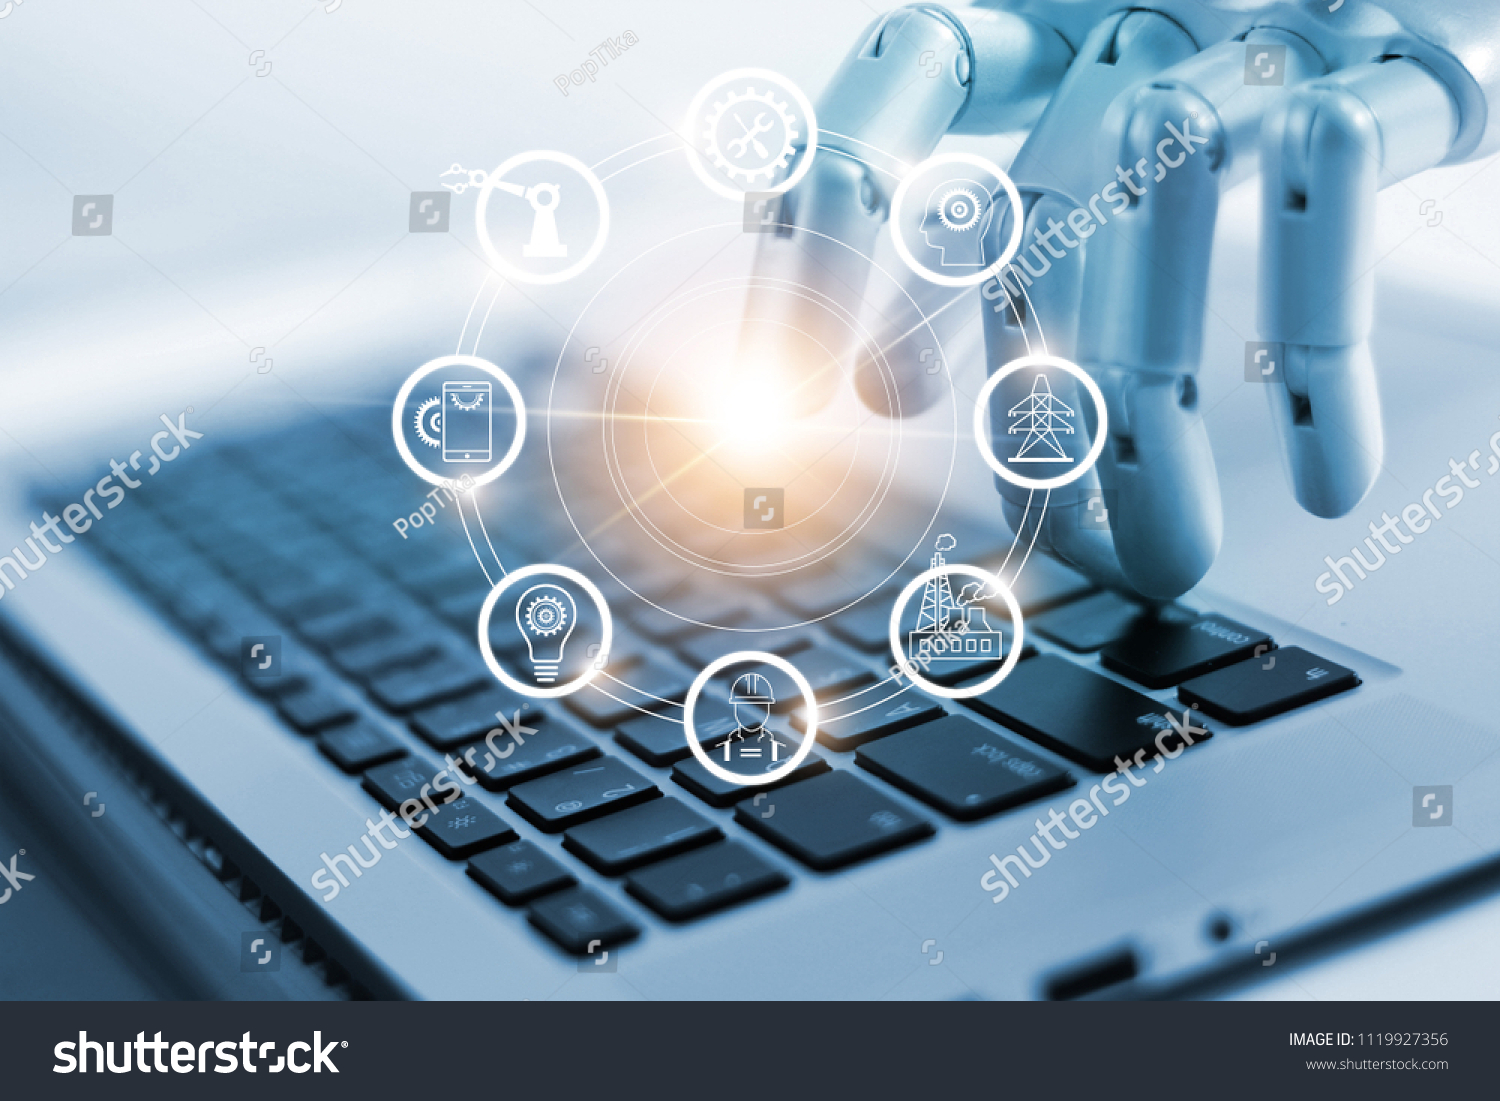 Hand Robotics Connecting Industrial Network Connection Stock Photo Diagram Of To On Laptop Artificial Intelligence Futuristic Technology